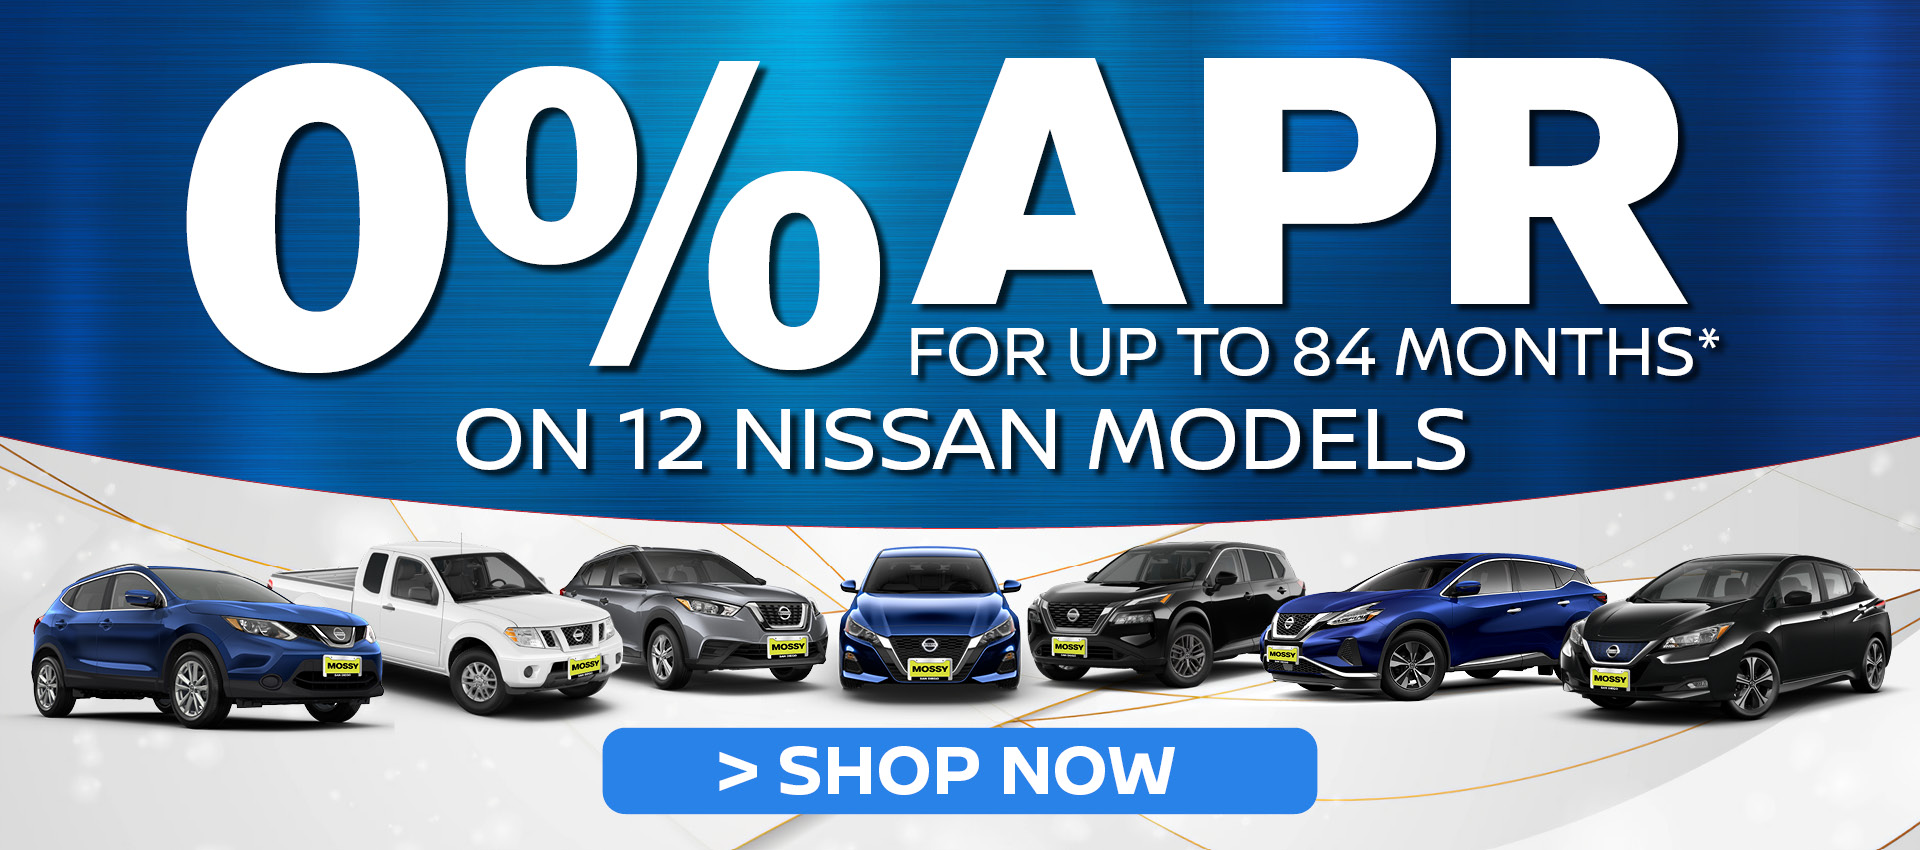 Mossy Nissan - 0%  - HP